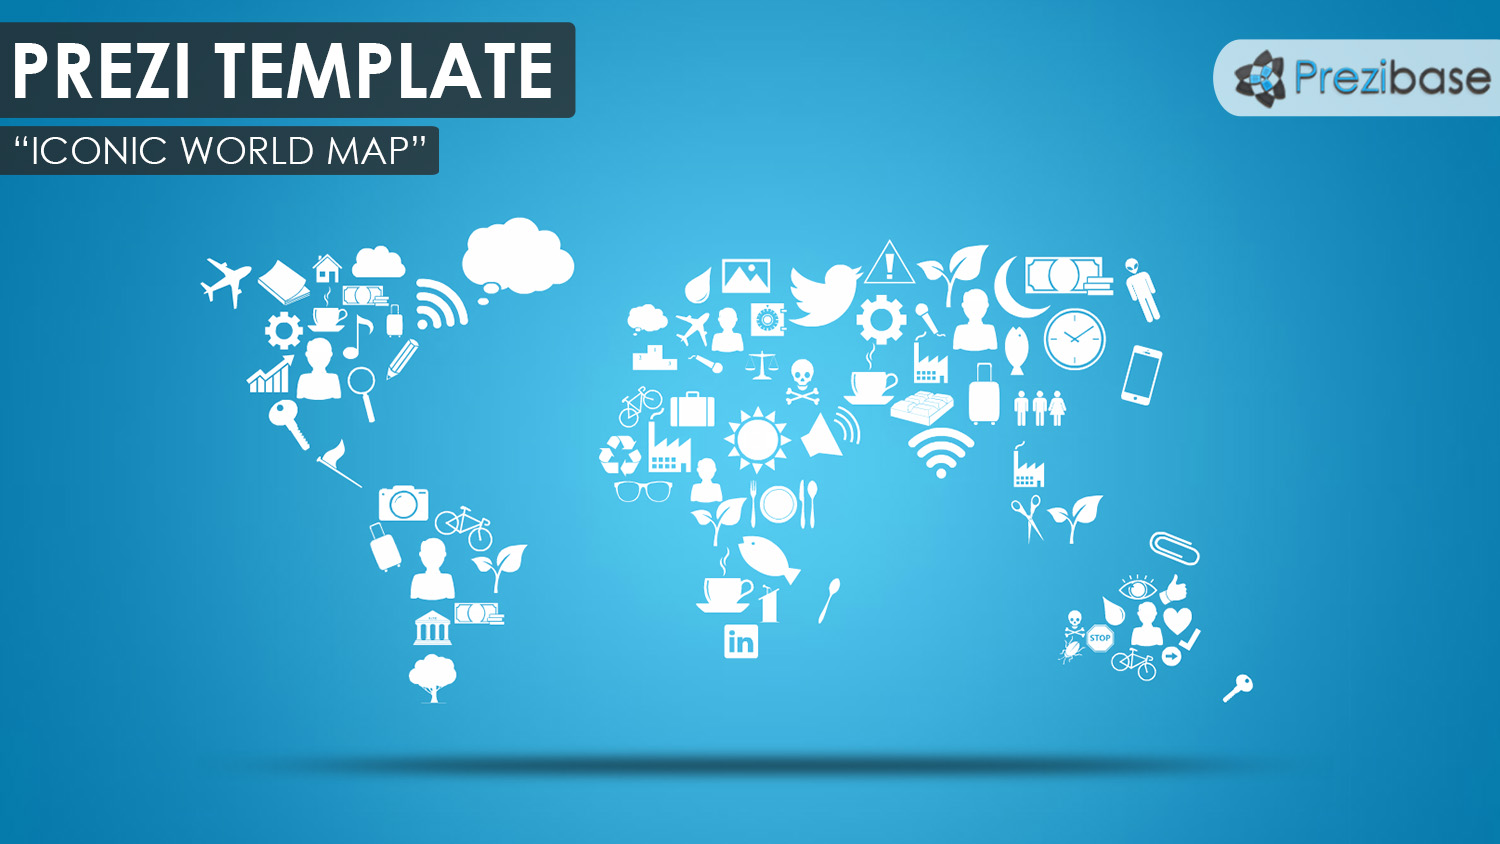 Iconic World Map Prezi Template Prezibase